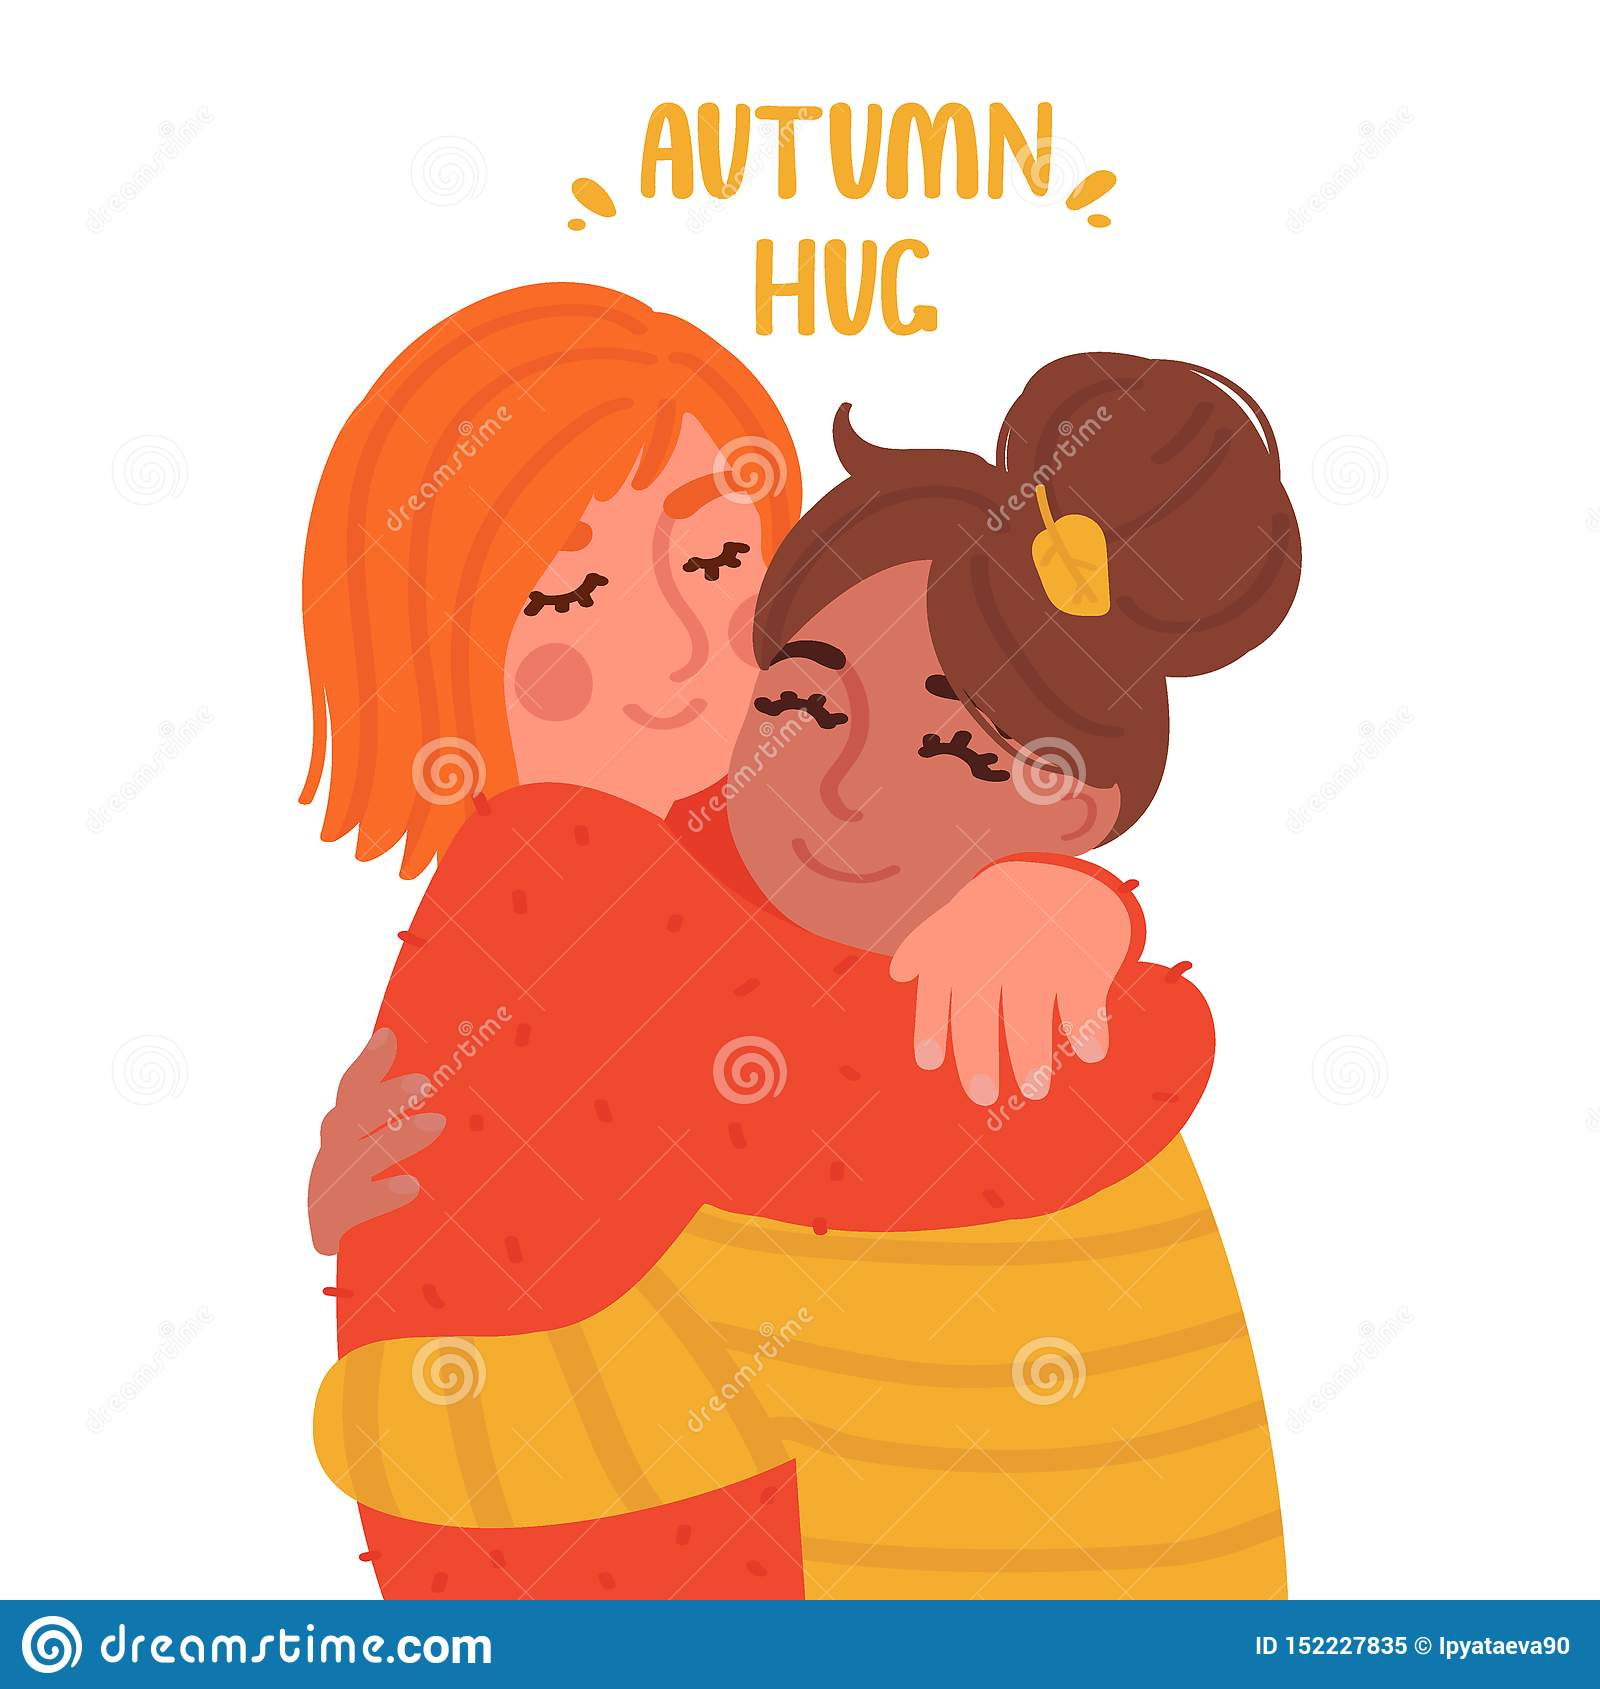 Two Cute Girls Hugging Cartoon Style Characters Vector Illustration Stock Vector Illustration Of Multicolor Equality 152227835